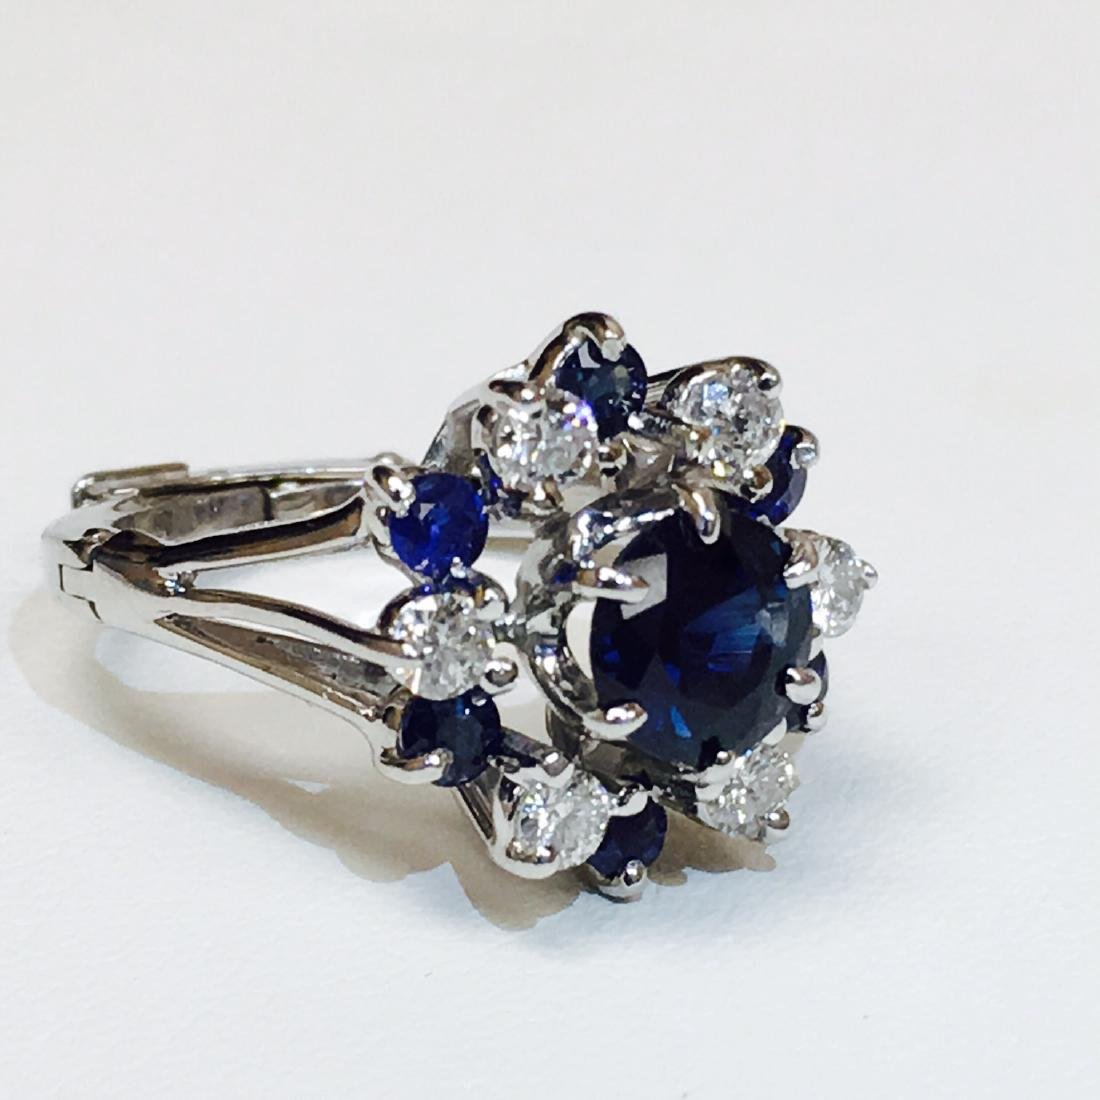 4.10 Carat Natural Blue Sapphire and Diamond Ring - 3